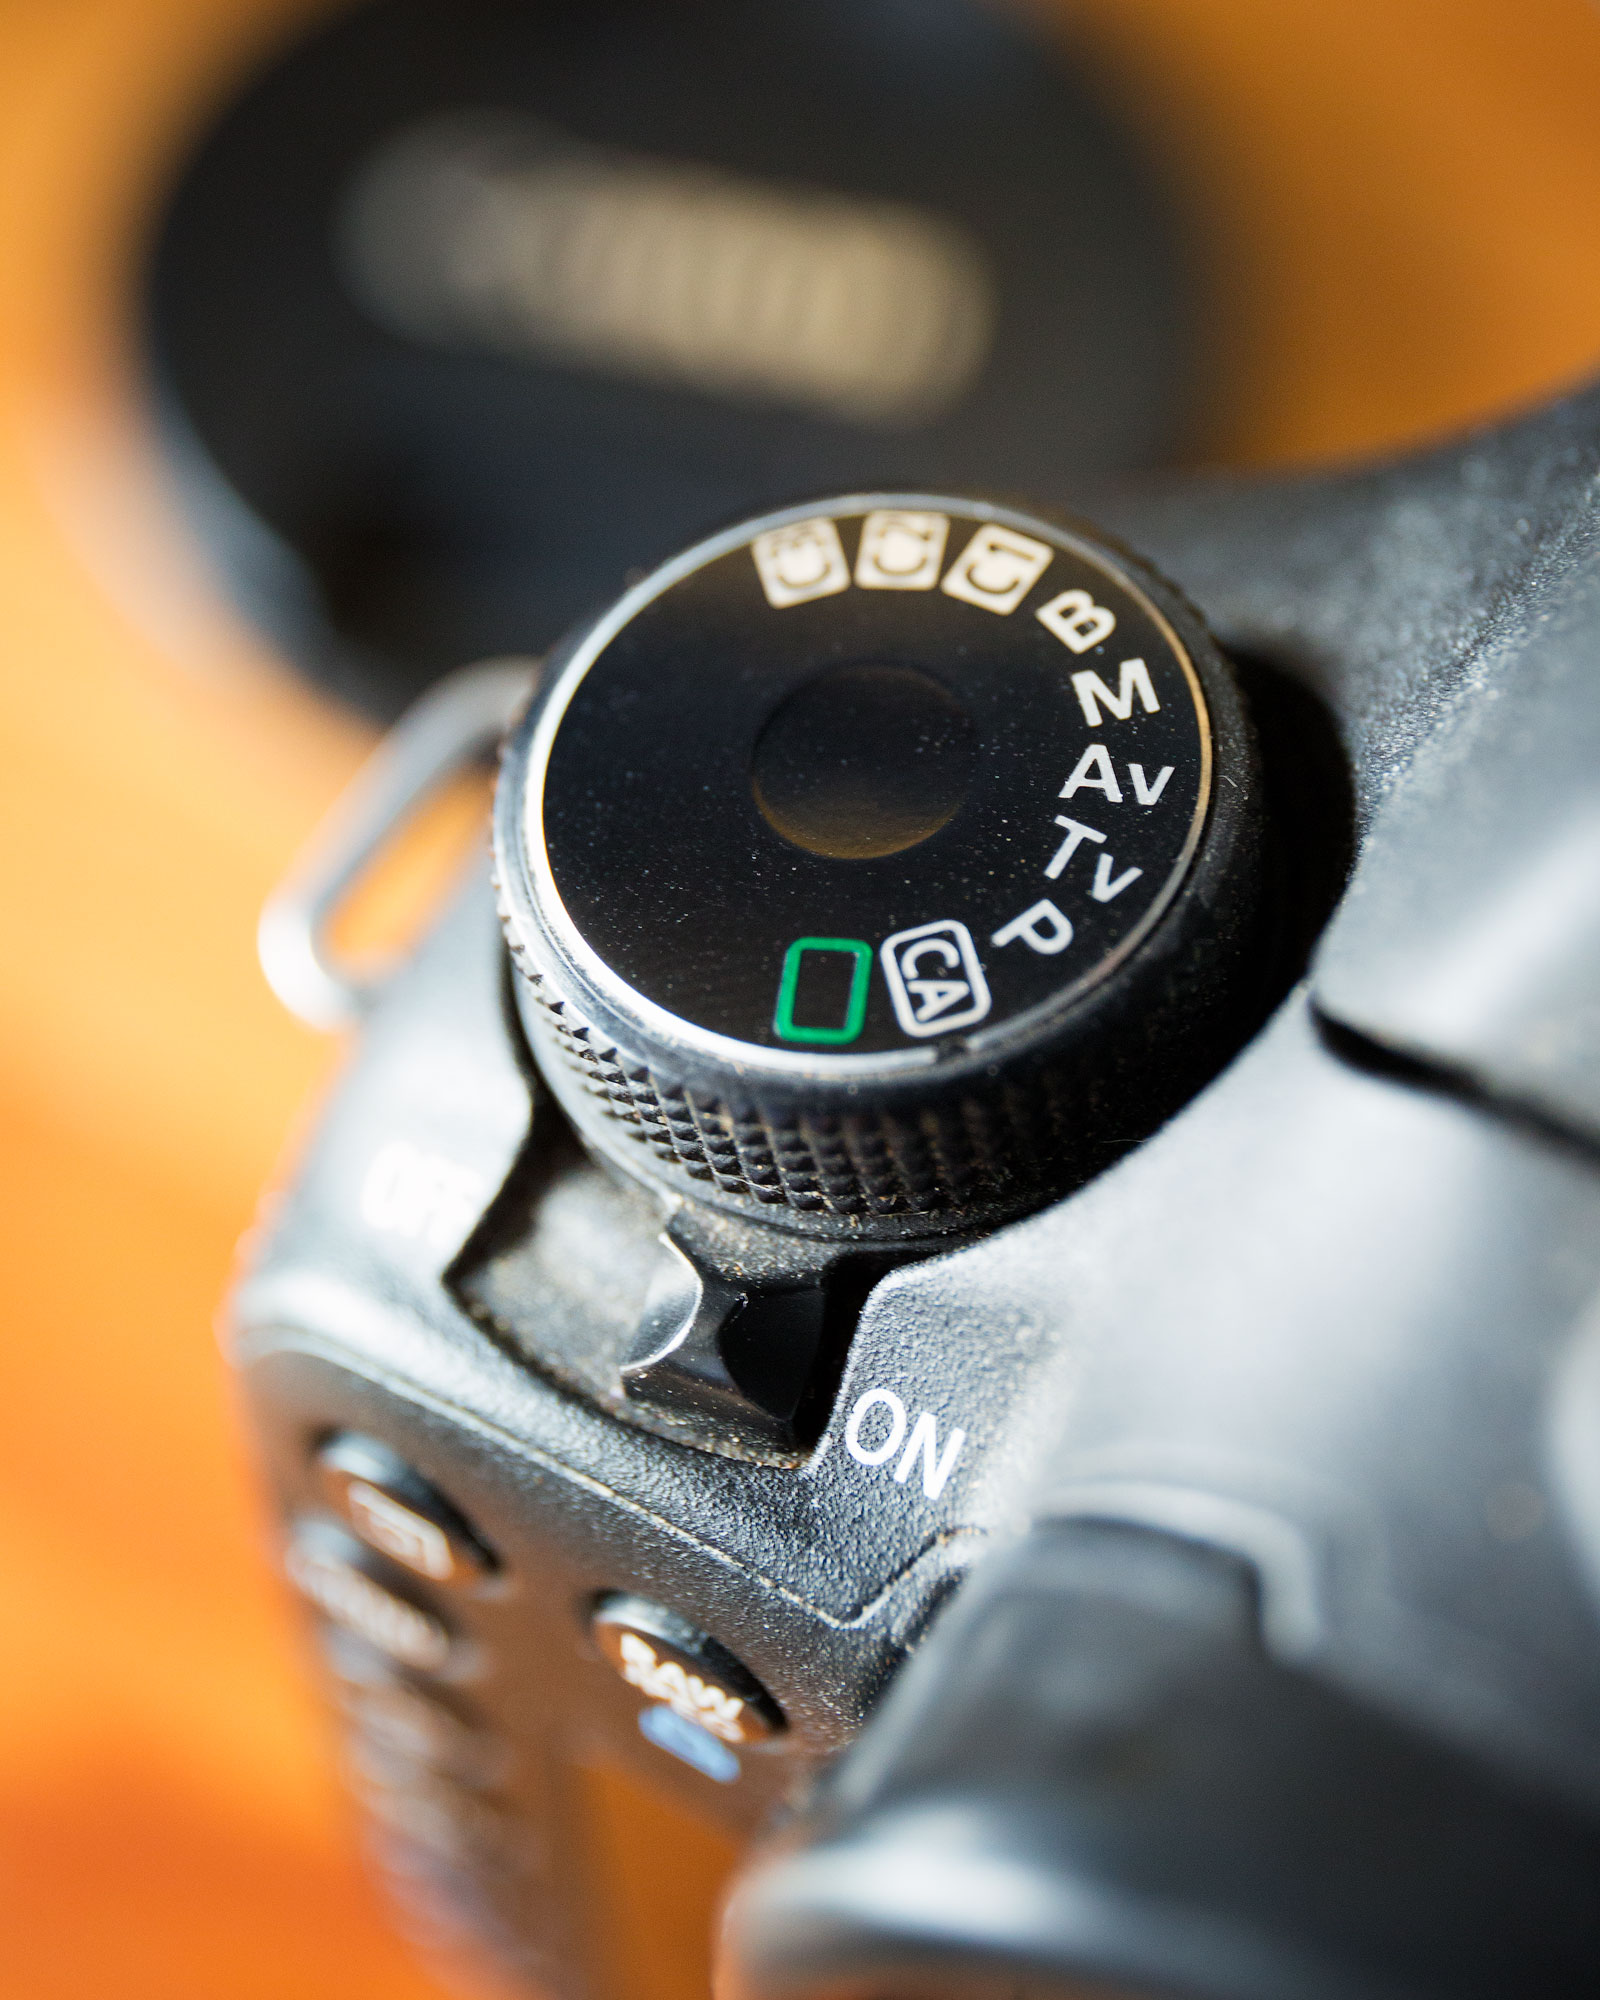 The relatively simple mode dial of a Canon 7D.